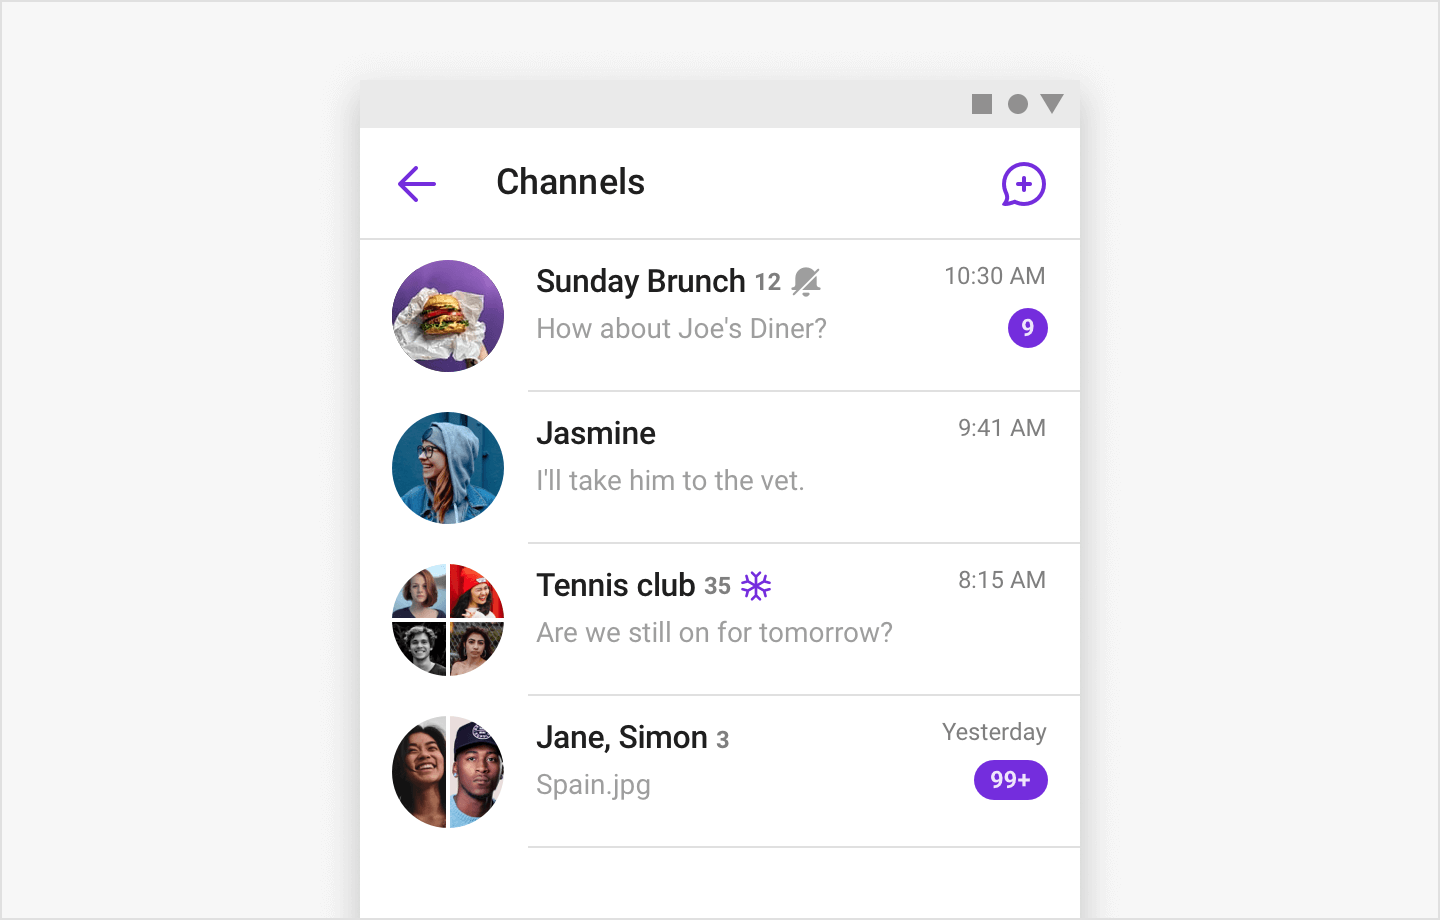 Image|ChannelListFragment listing user's group channels in view.